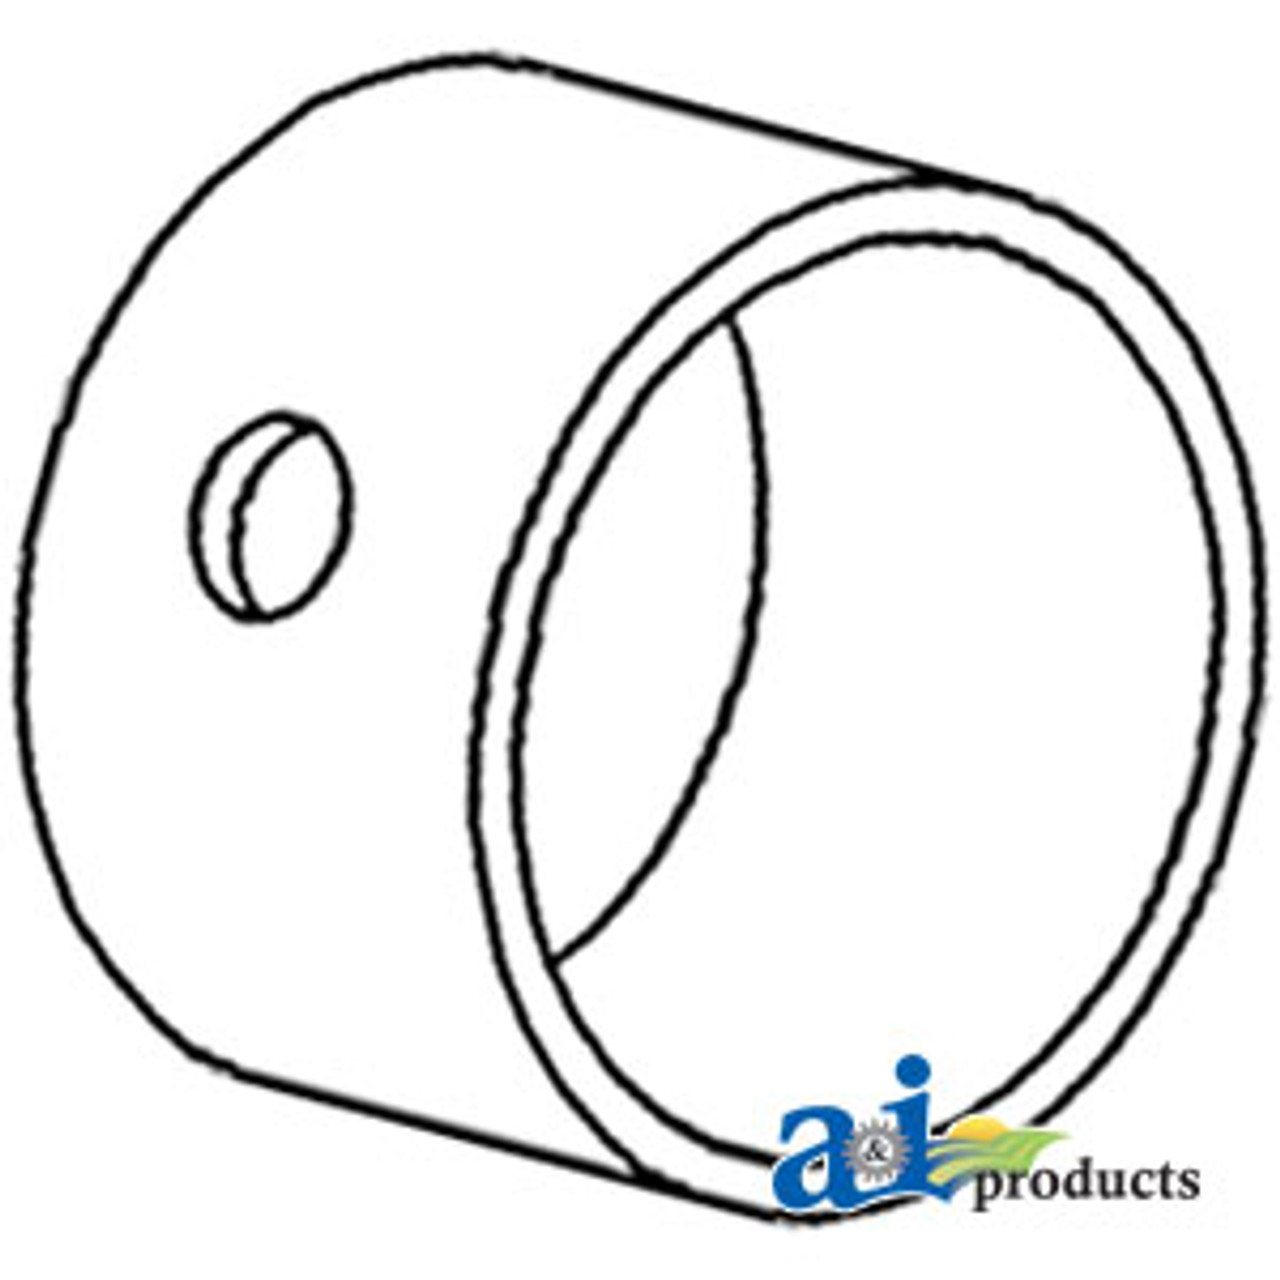 A-83930554-Bushing, Front & Rear Axle (MFWD) A-83930554